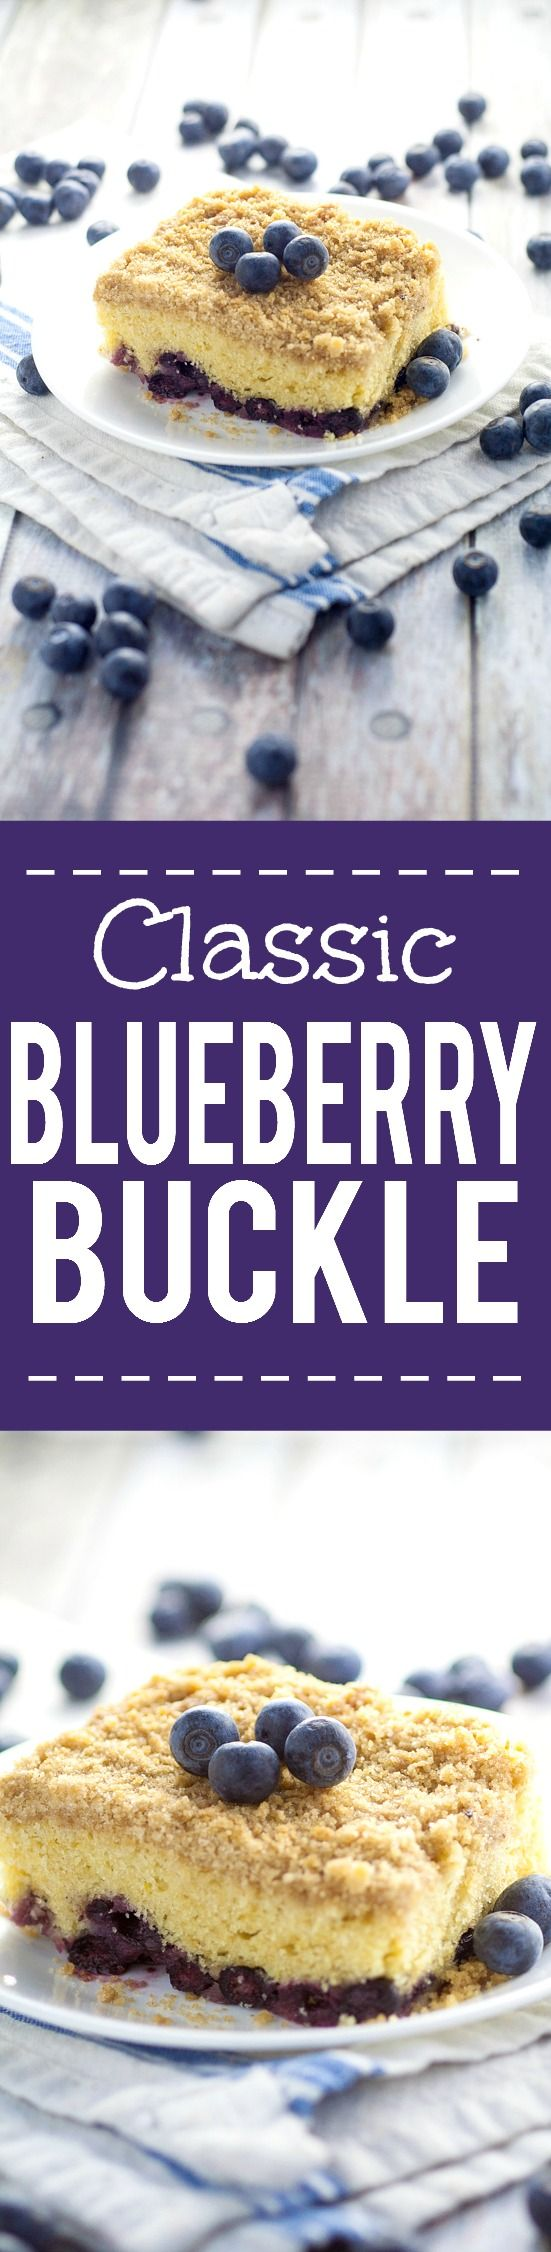 Classic Blueberry Buckle Recipe -Sweet and tangy combine to make this Classic Blueberry Buckle cake recipe truly amazing, with moist cake, fresh blueberries and a crumbly, crunchy streusel topping. Easy dessert recipe to make and tastes AMAZING with fresh Summer blueberries.